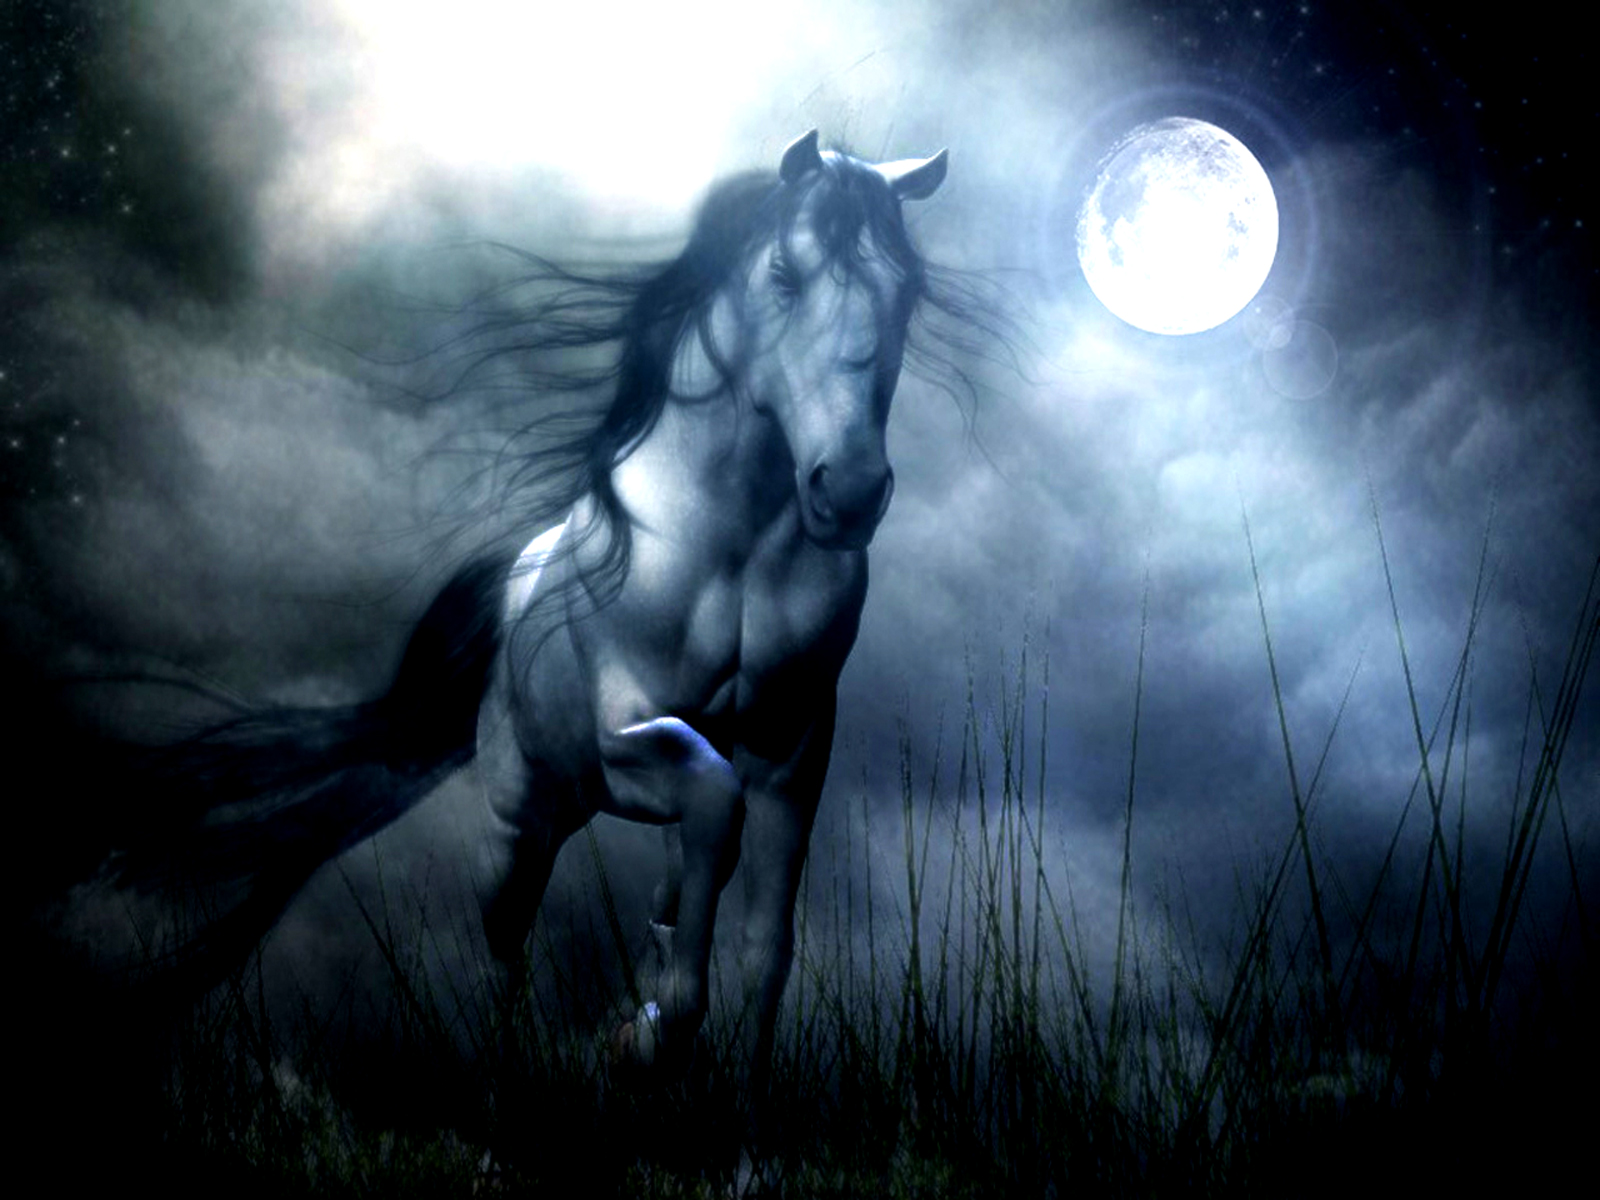 Most Inspiring   Wallpaper Horse Halloween - fantasy-horse-hd-wallpaper1  Snapshot_266869.jpg